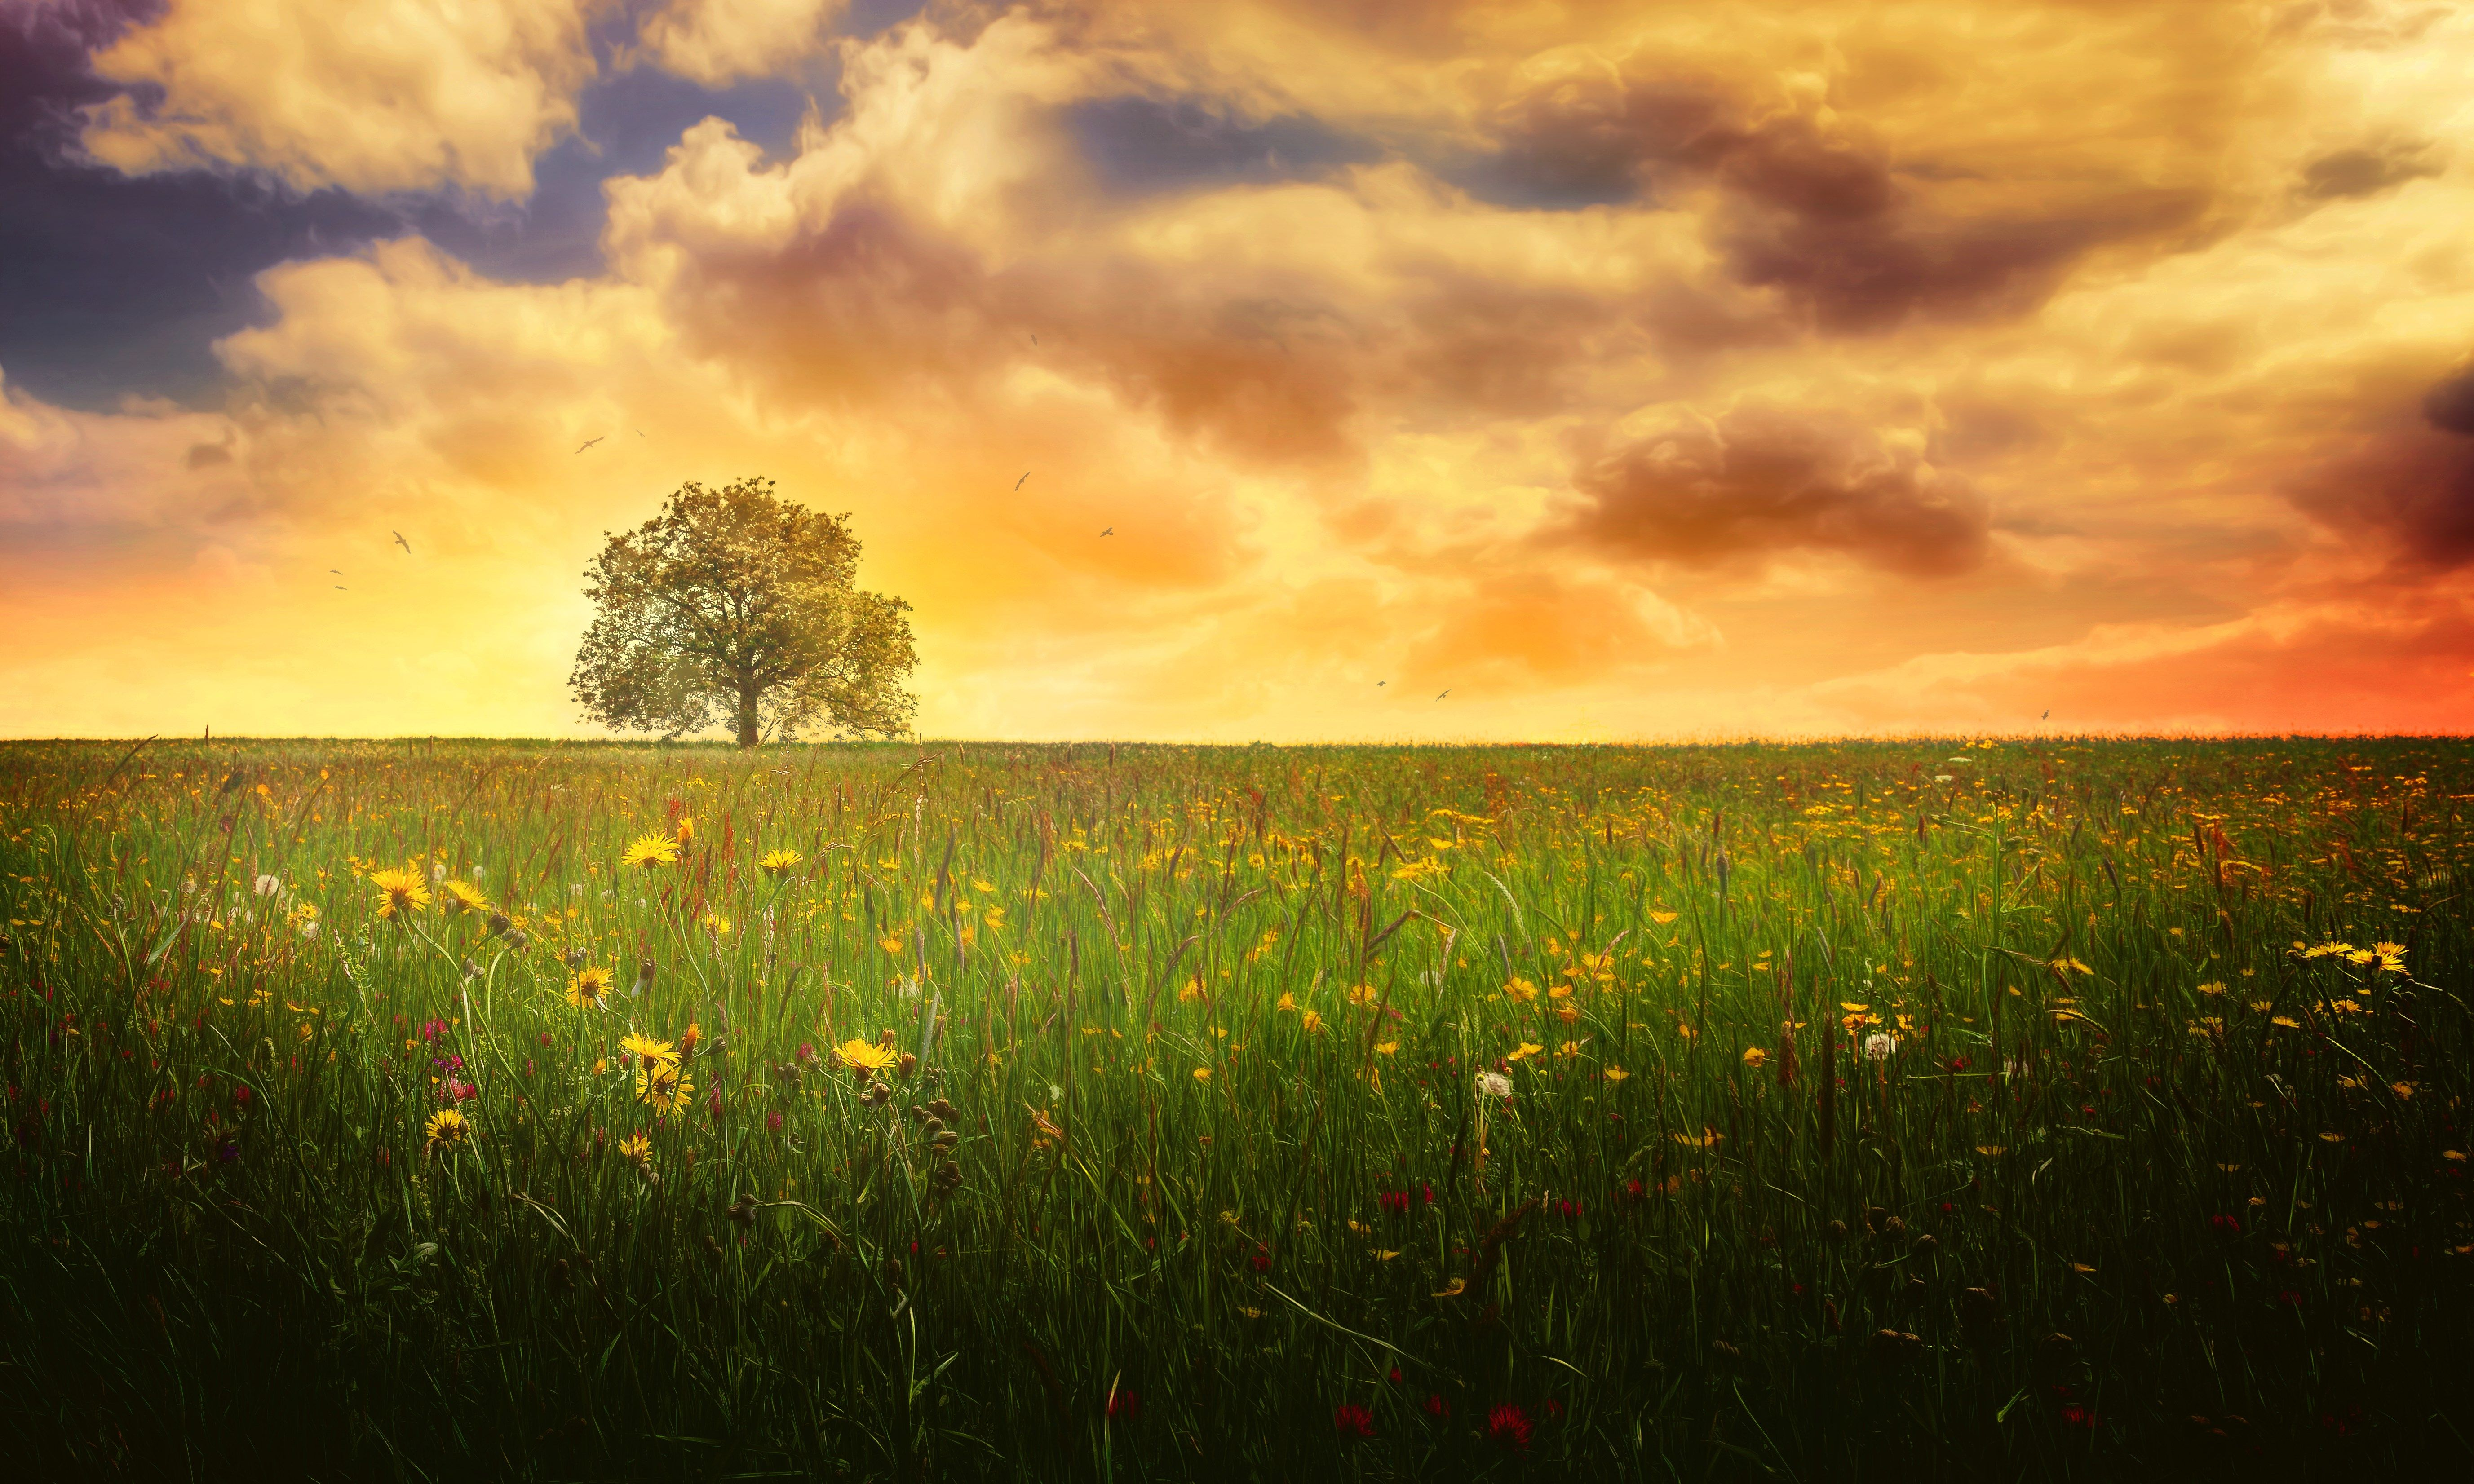 High Resolution Wallpaper Tree Tree Images Stunning Photography Landscape Photography